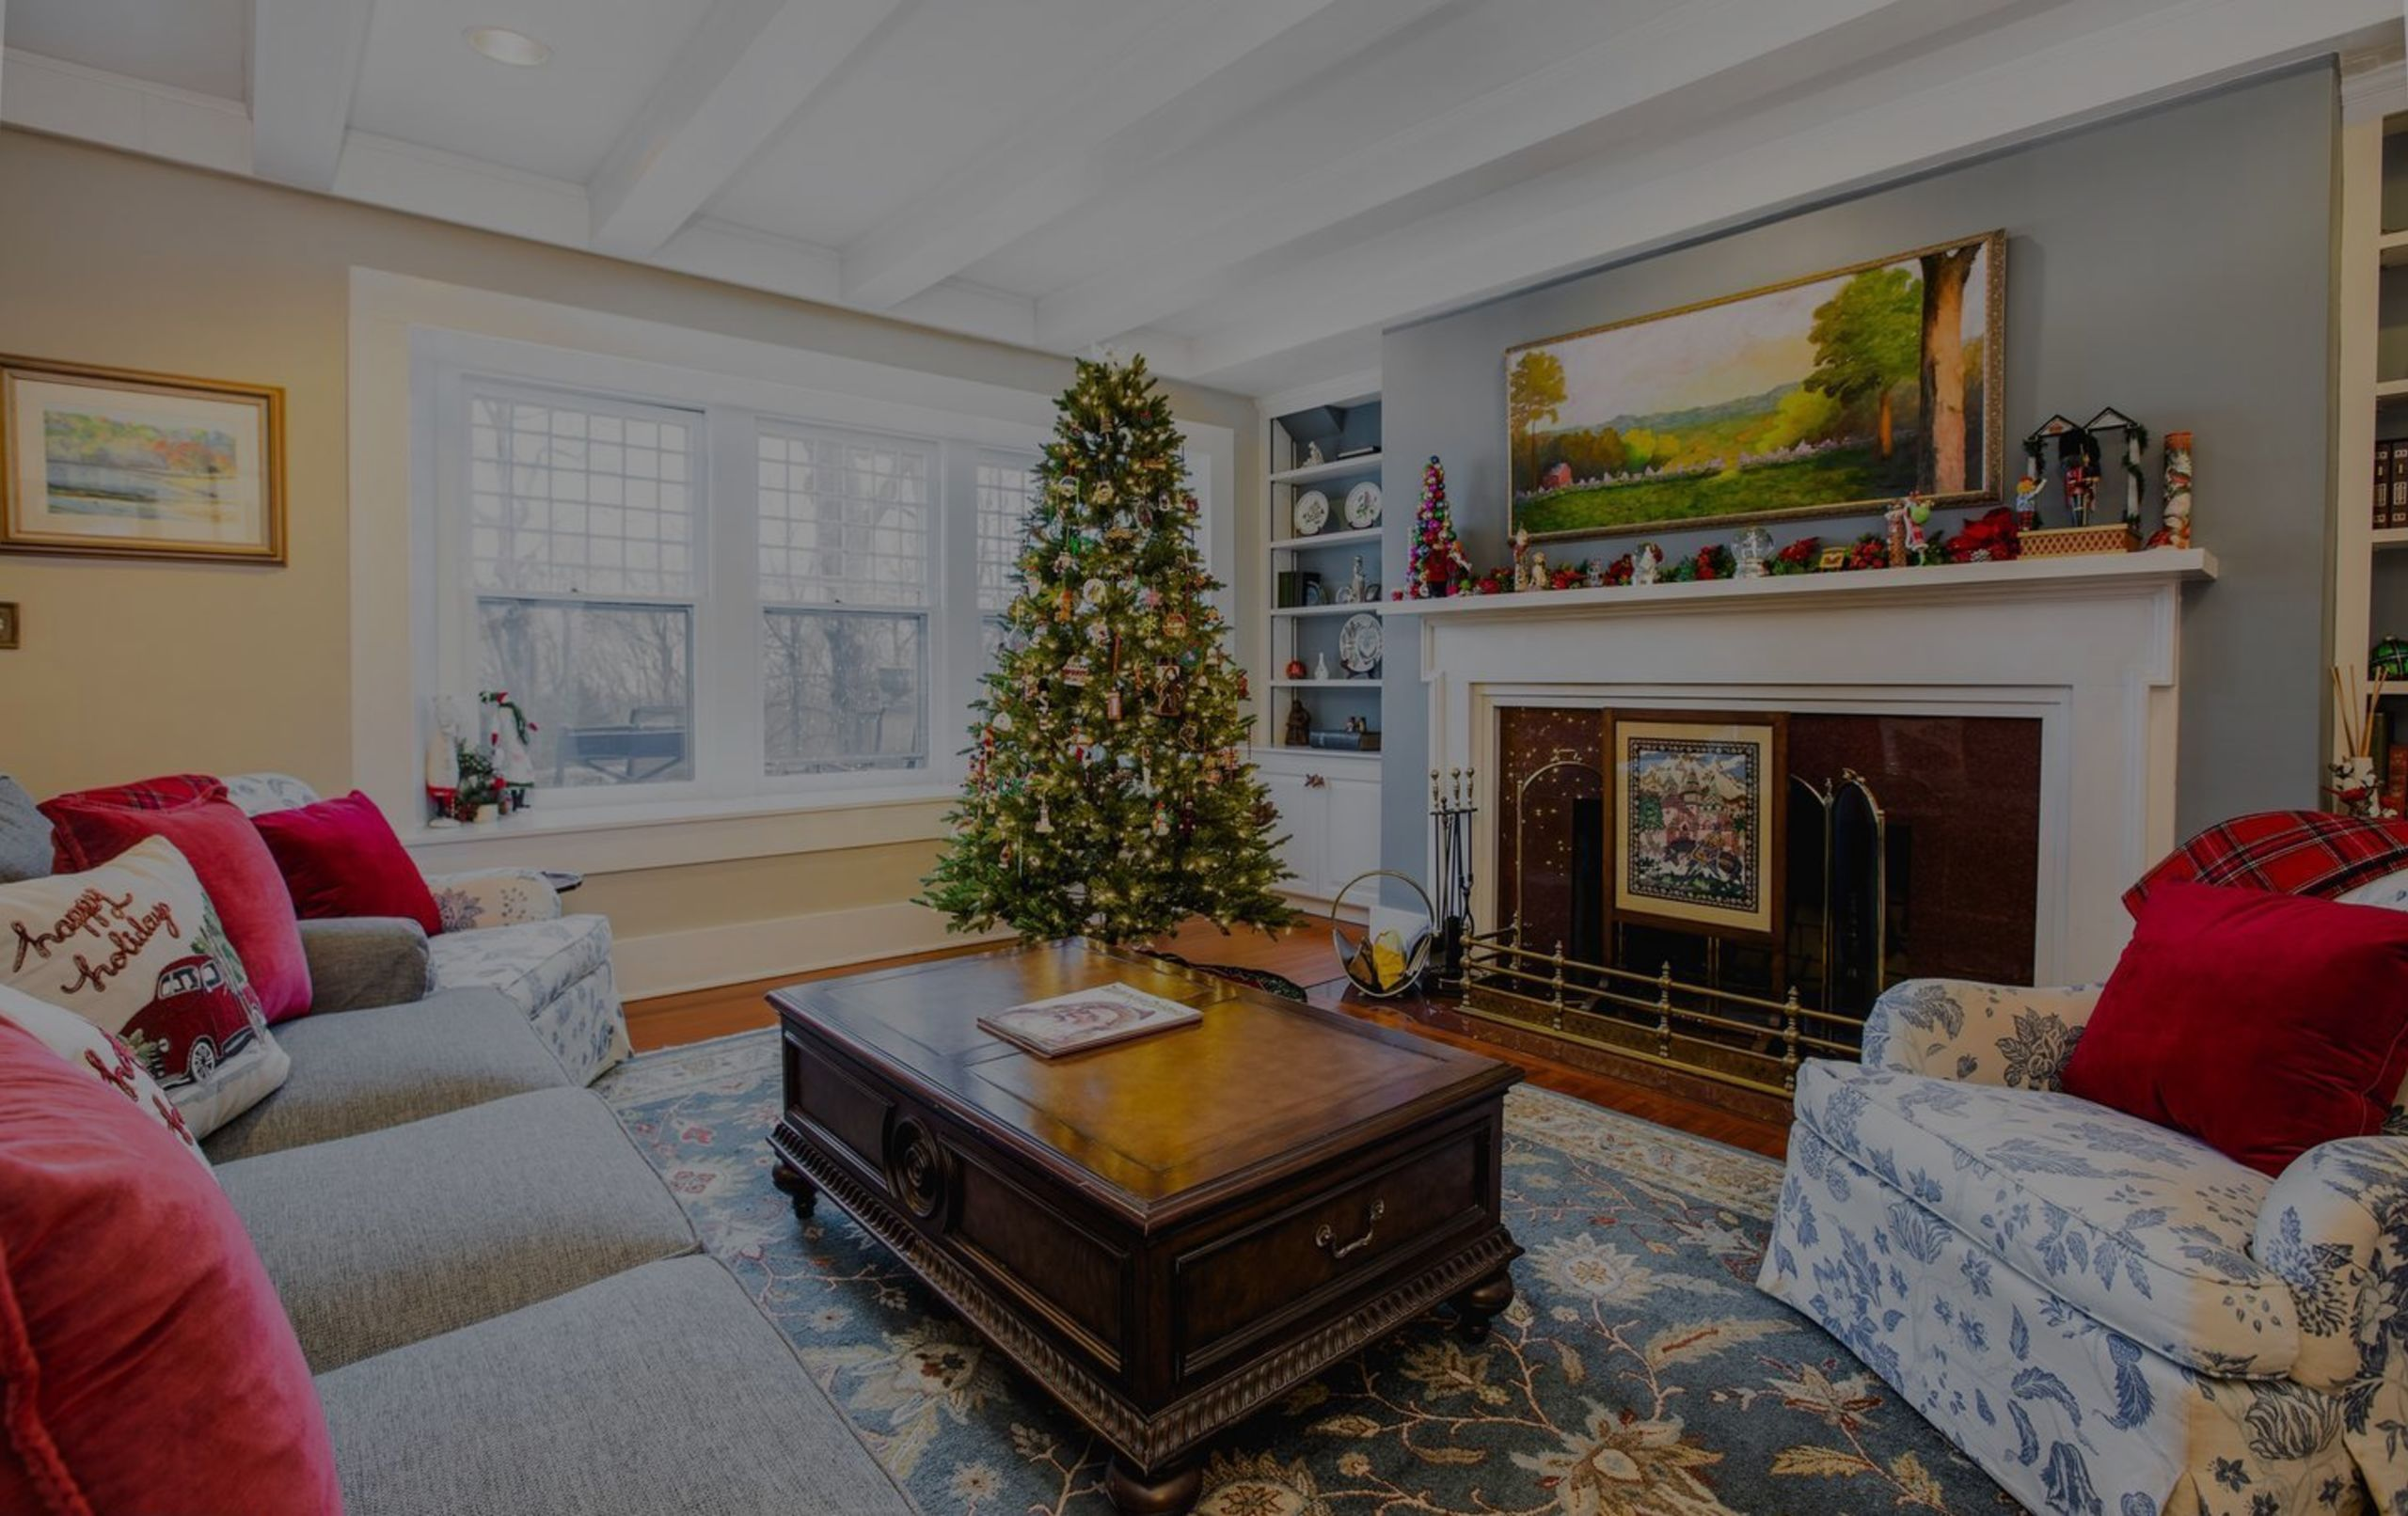 Homes for the Holidays 2018